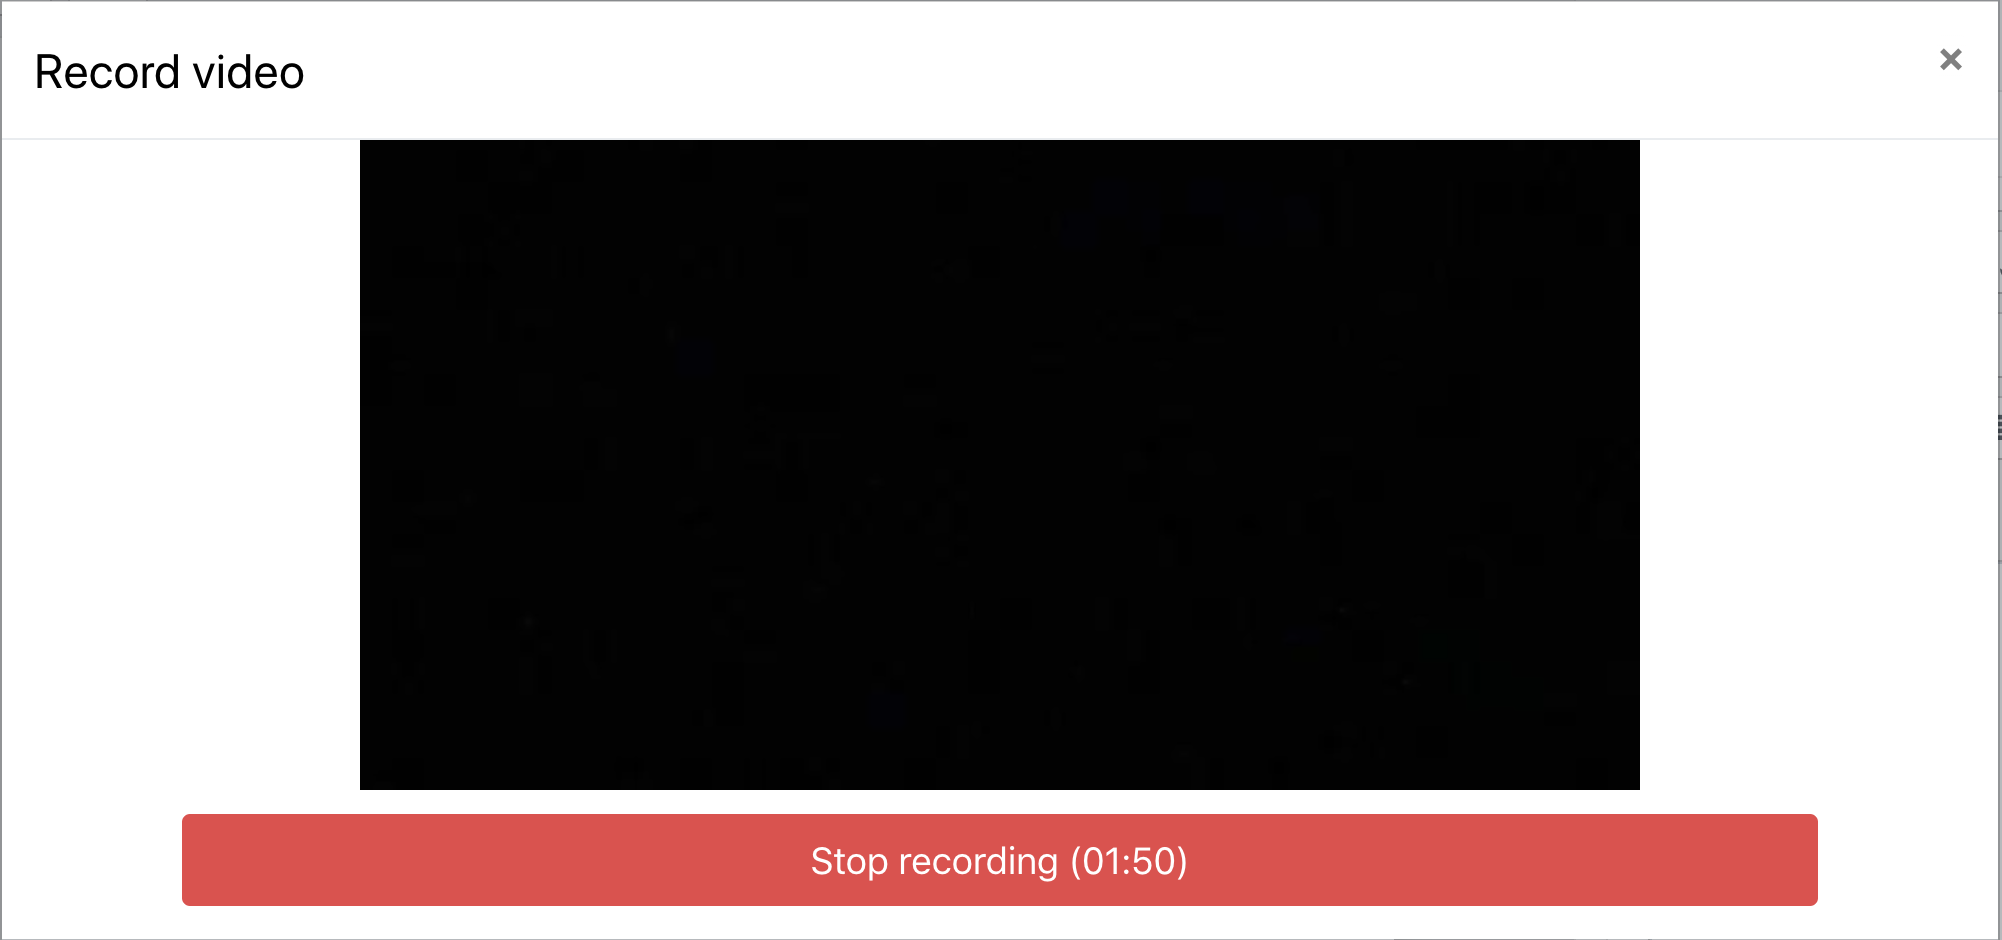 An image of the stop recording button.